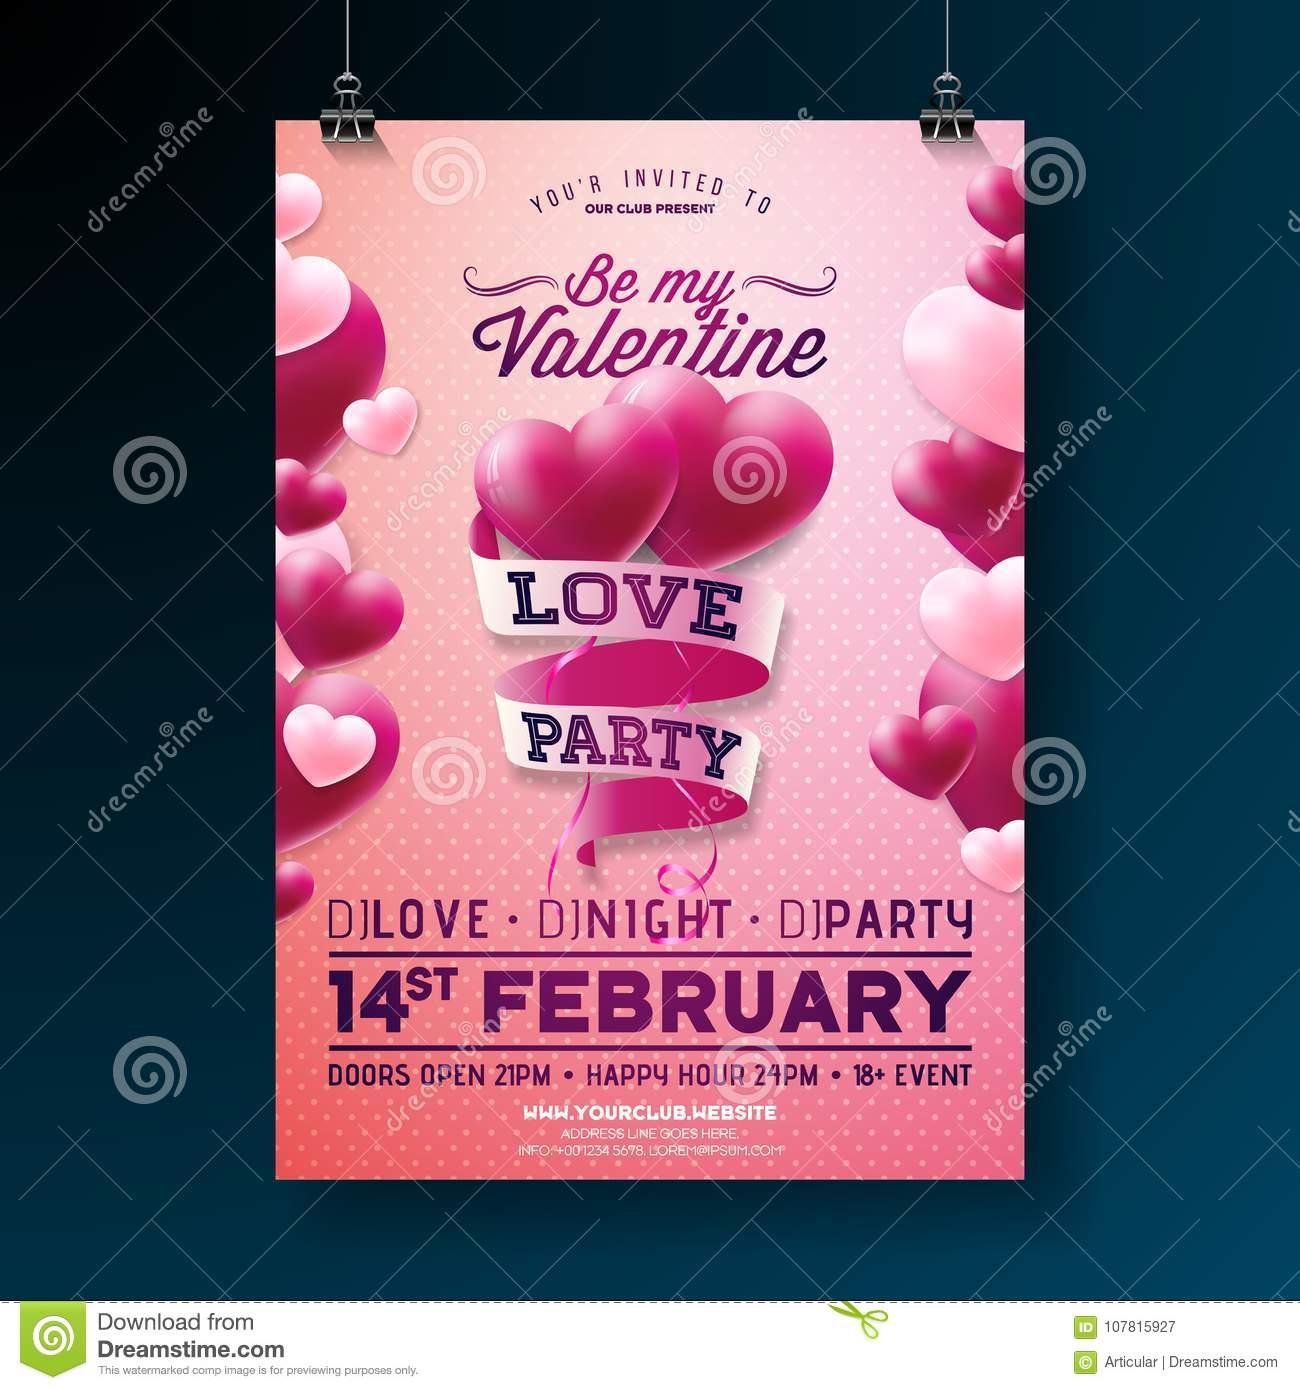 Vector Valentines Day Party Flyer Design With Typography And Balloon